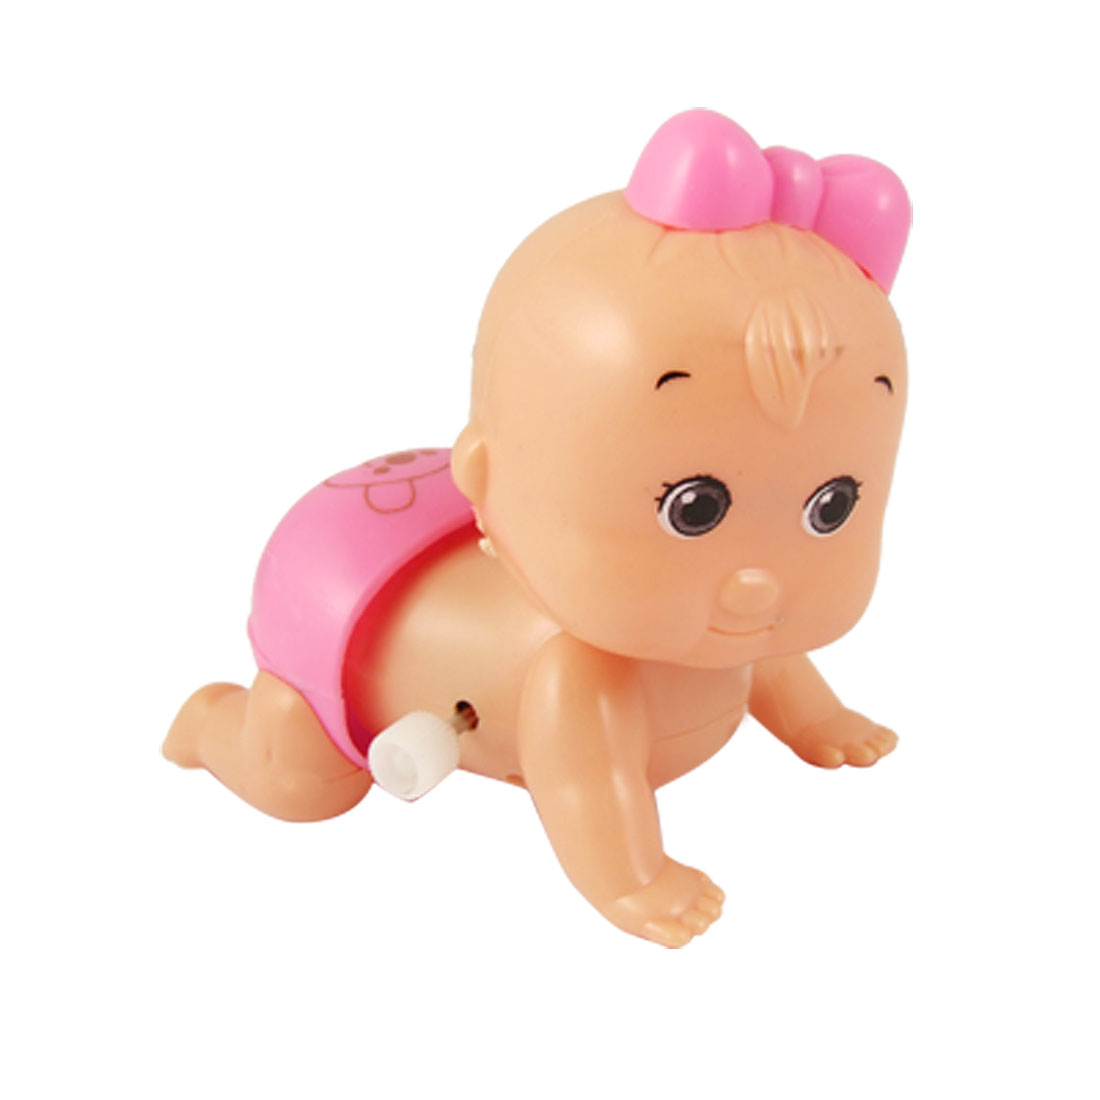 Pink Beige Plastic Cochain Crawling Toy Doll for Kids Children